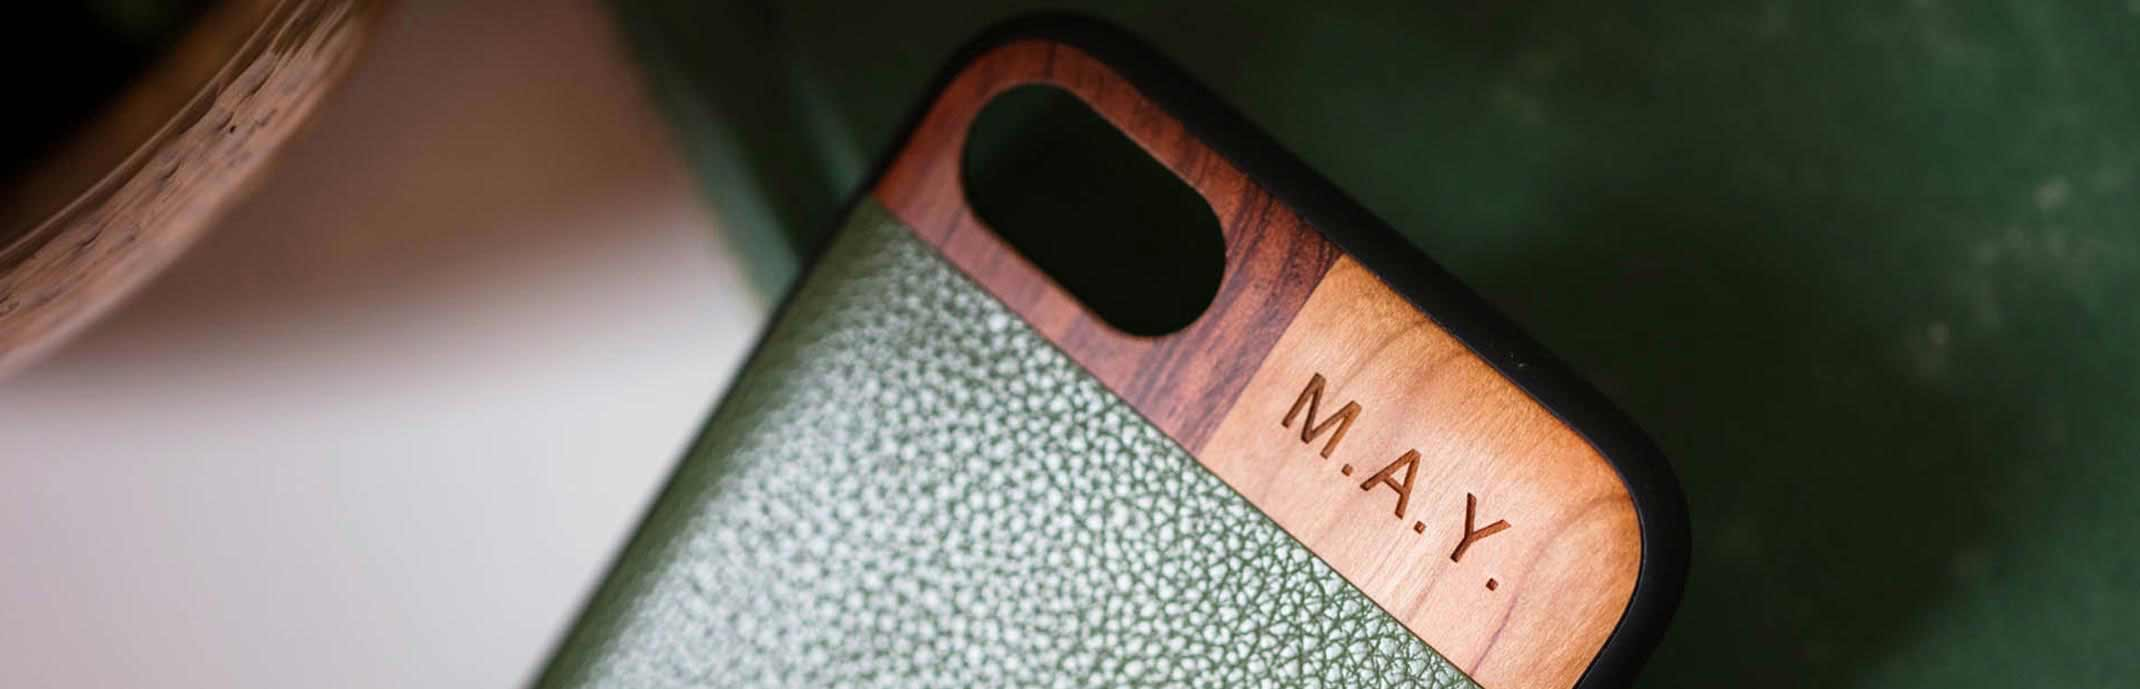 Monogrammed Wood and Leather iPhone 6 /7 Phone Cases